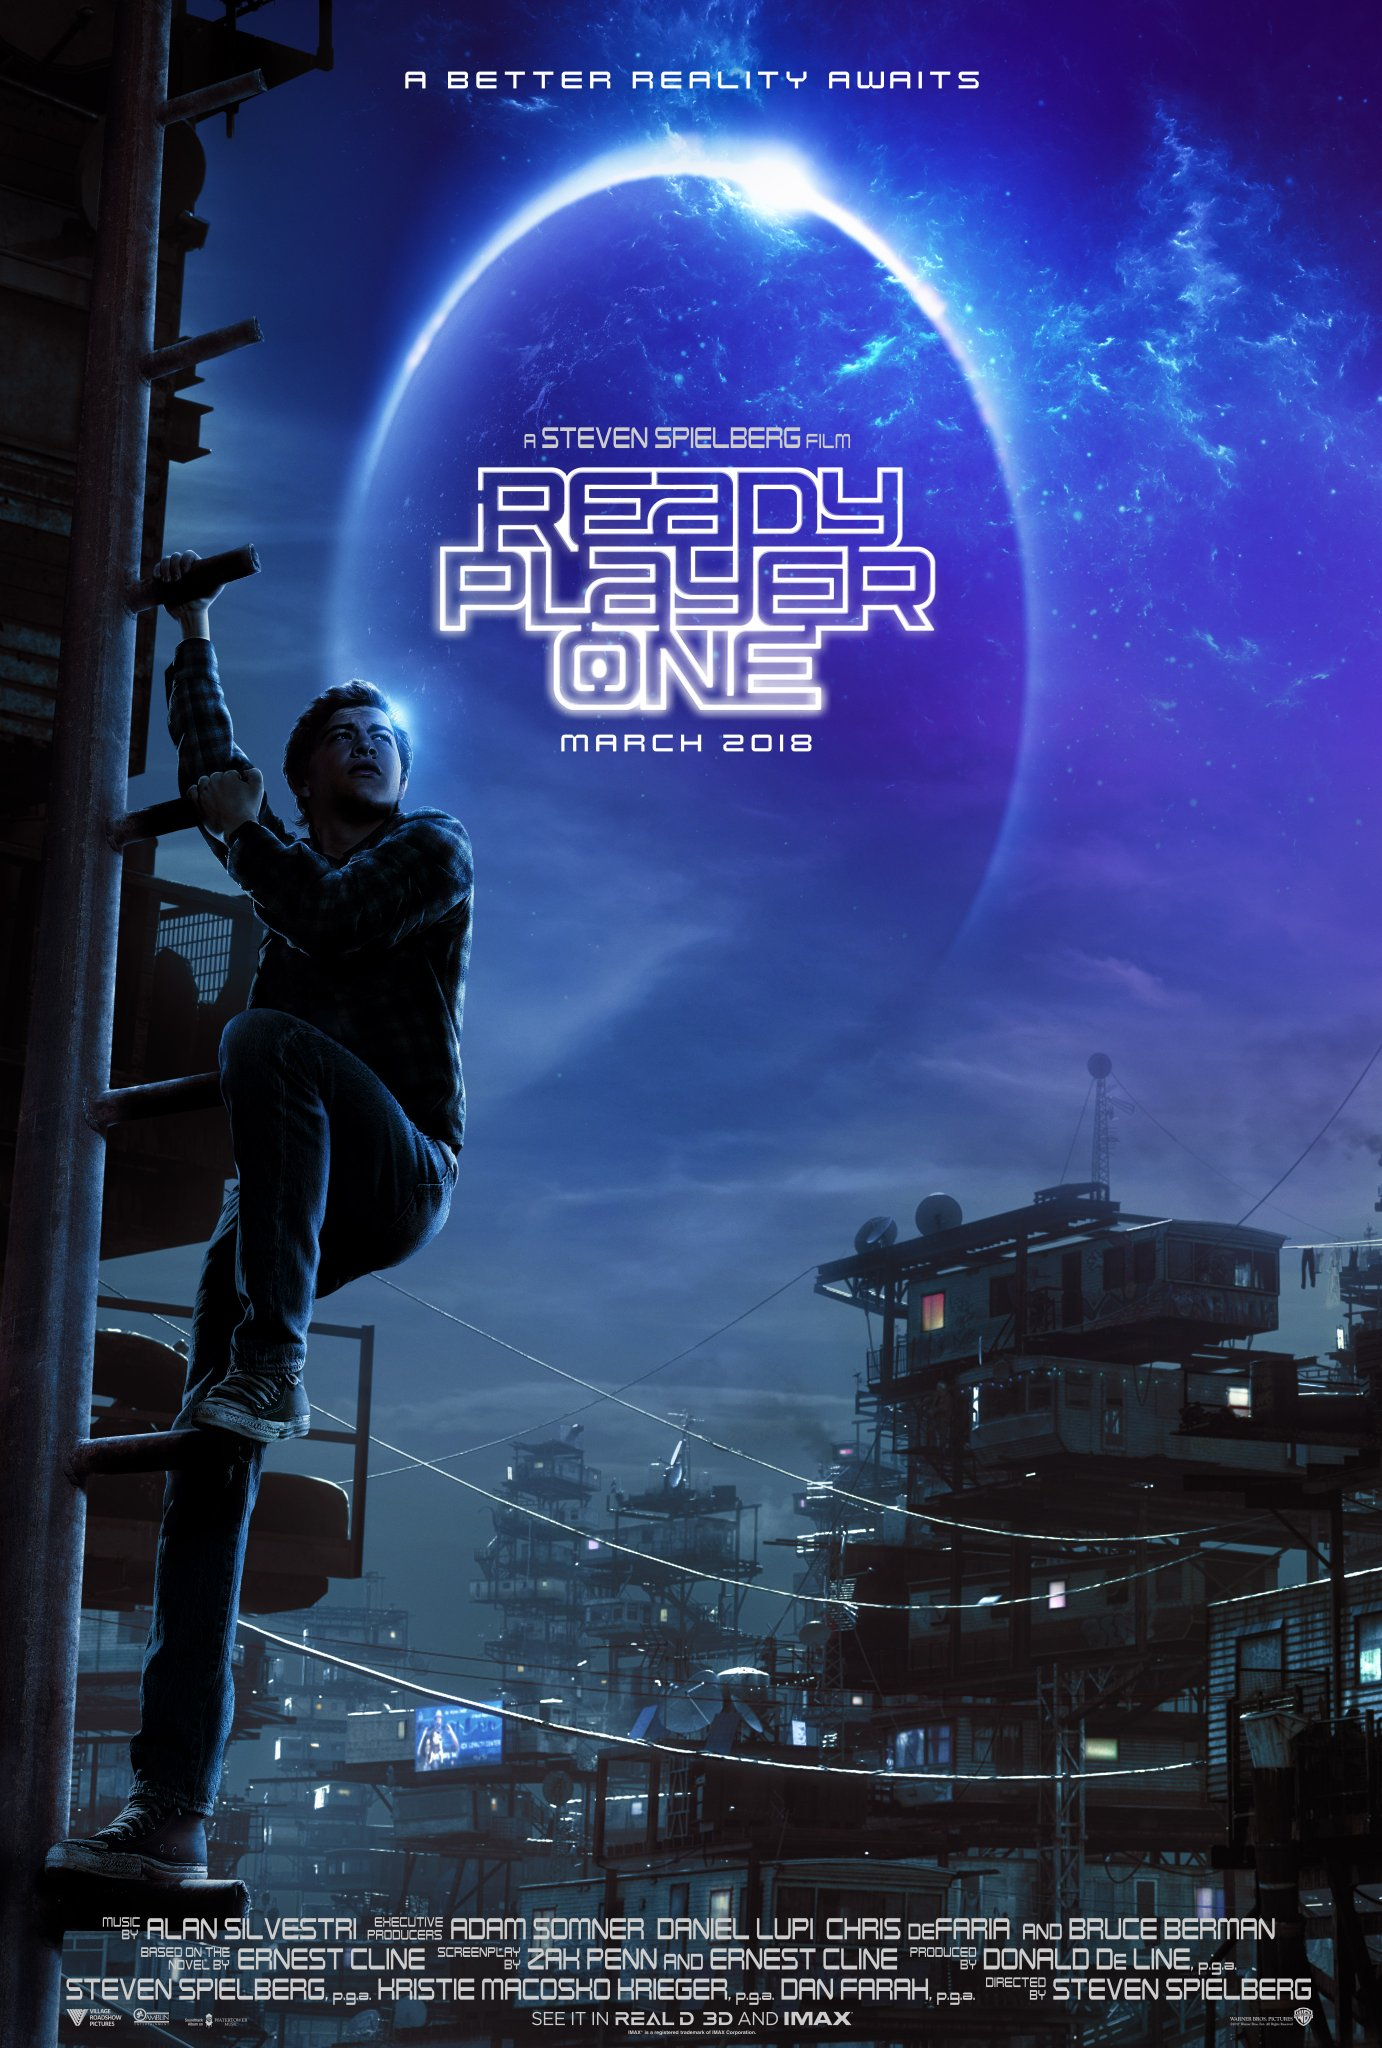 Ready Player One film review: Steven Spielberg takes on the joys and dangers of escapism